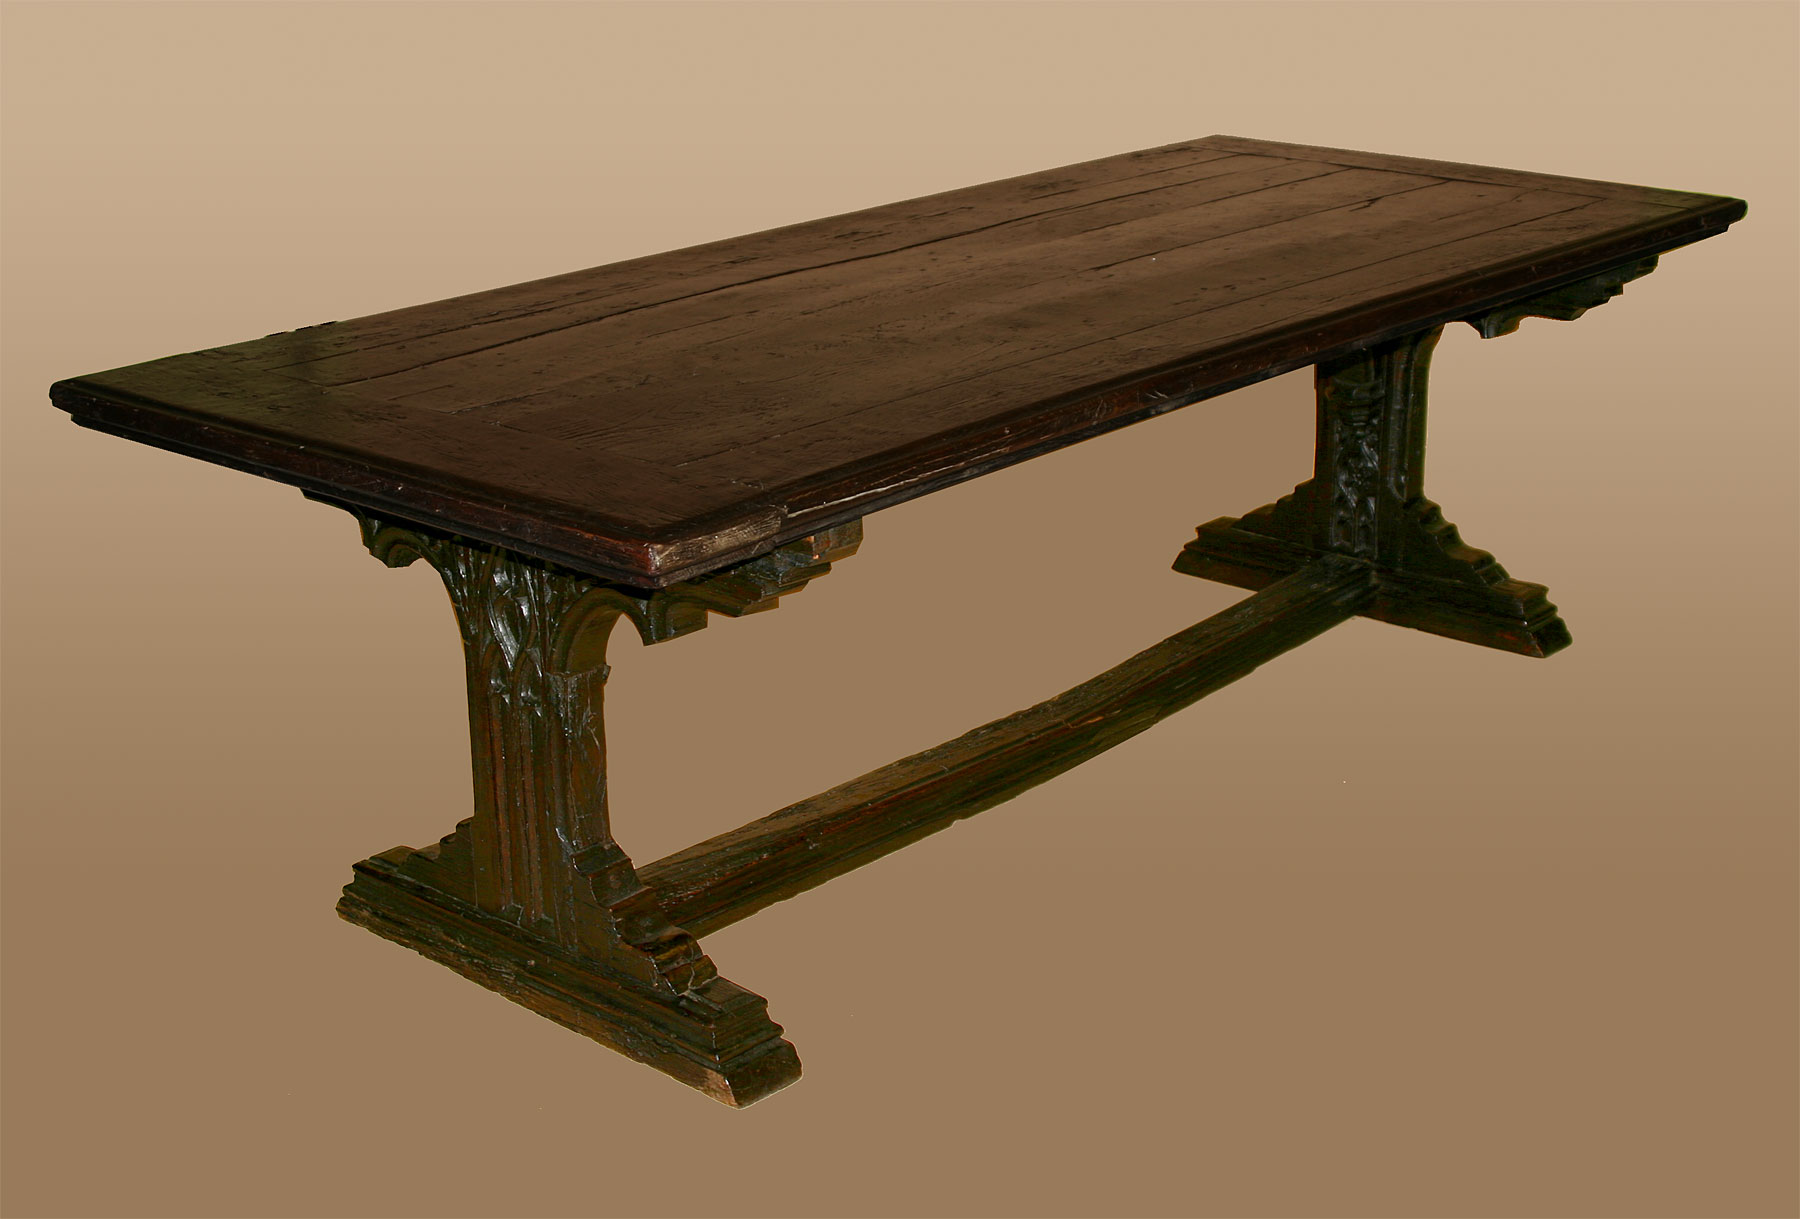 Rare Northern European Gothic Period Refectory Table